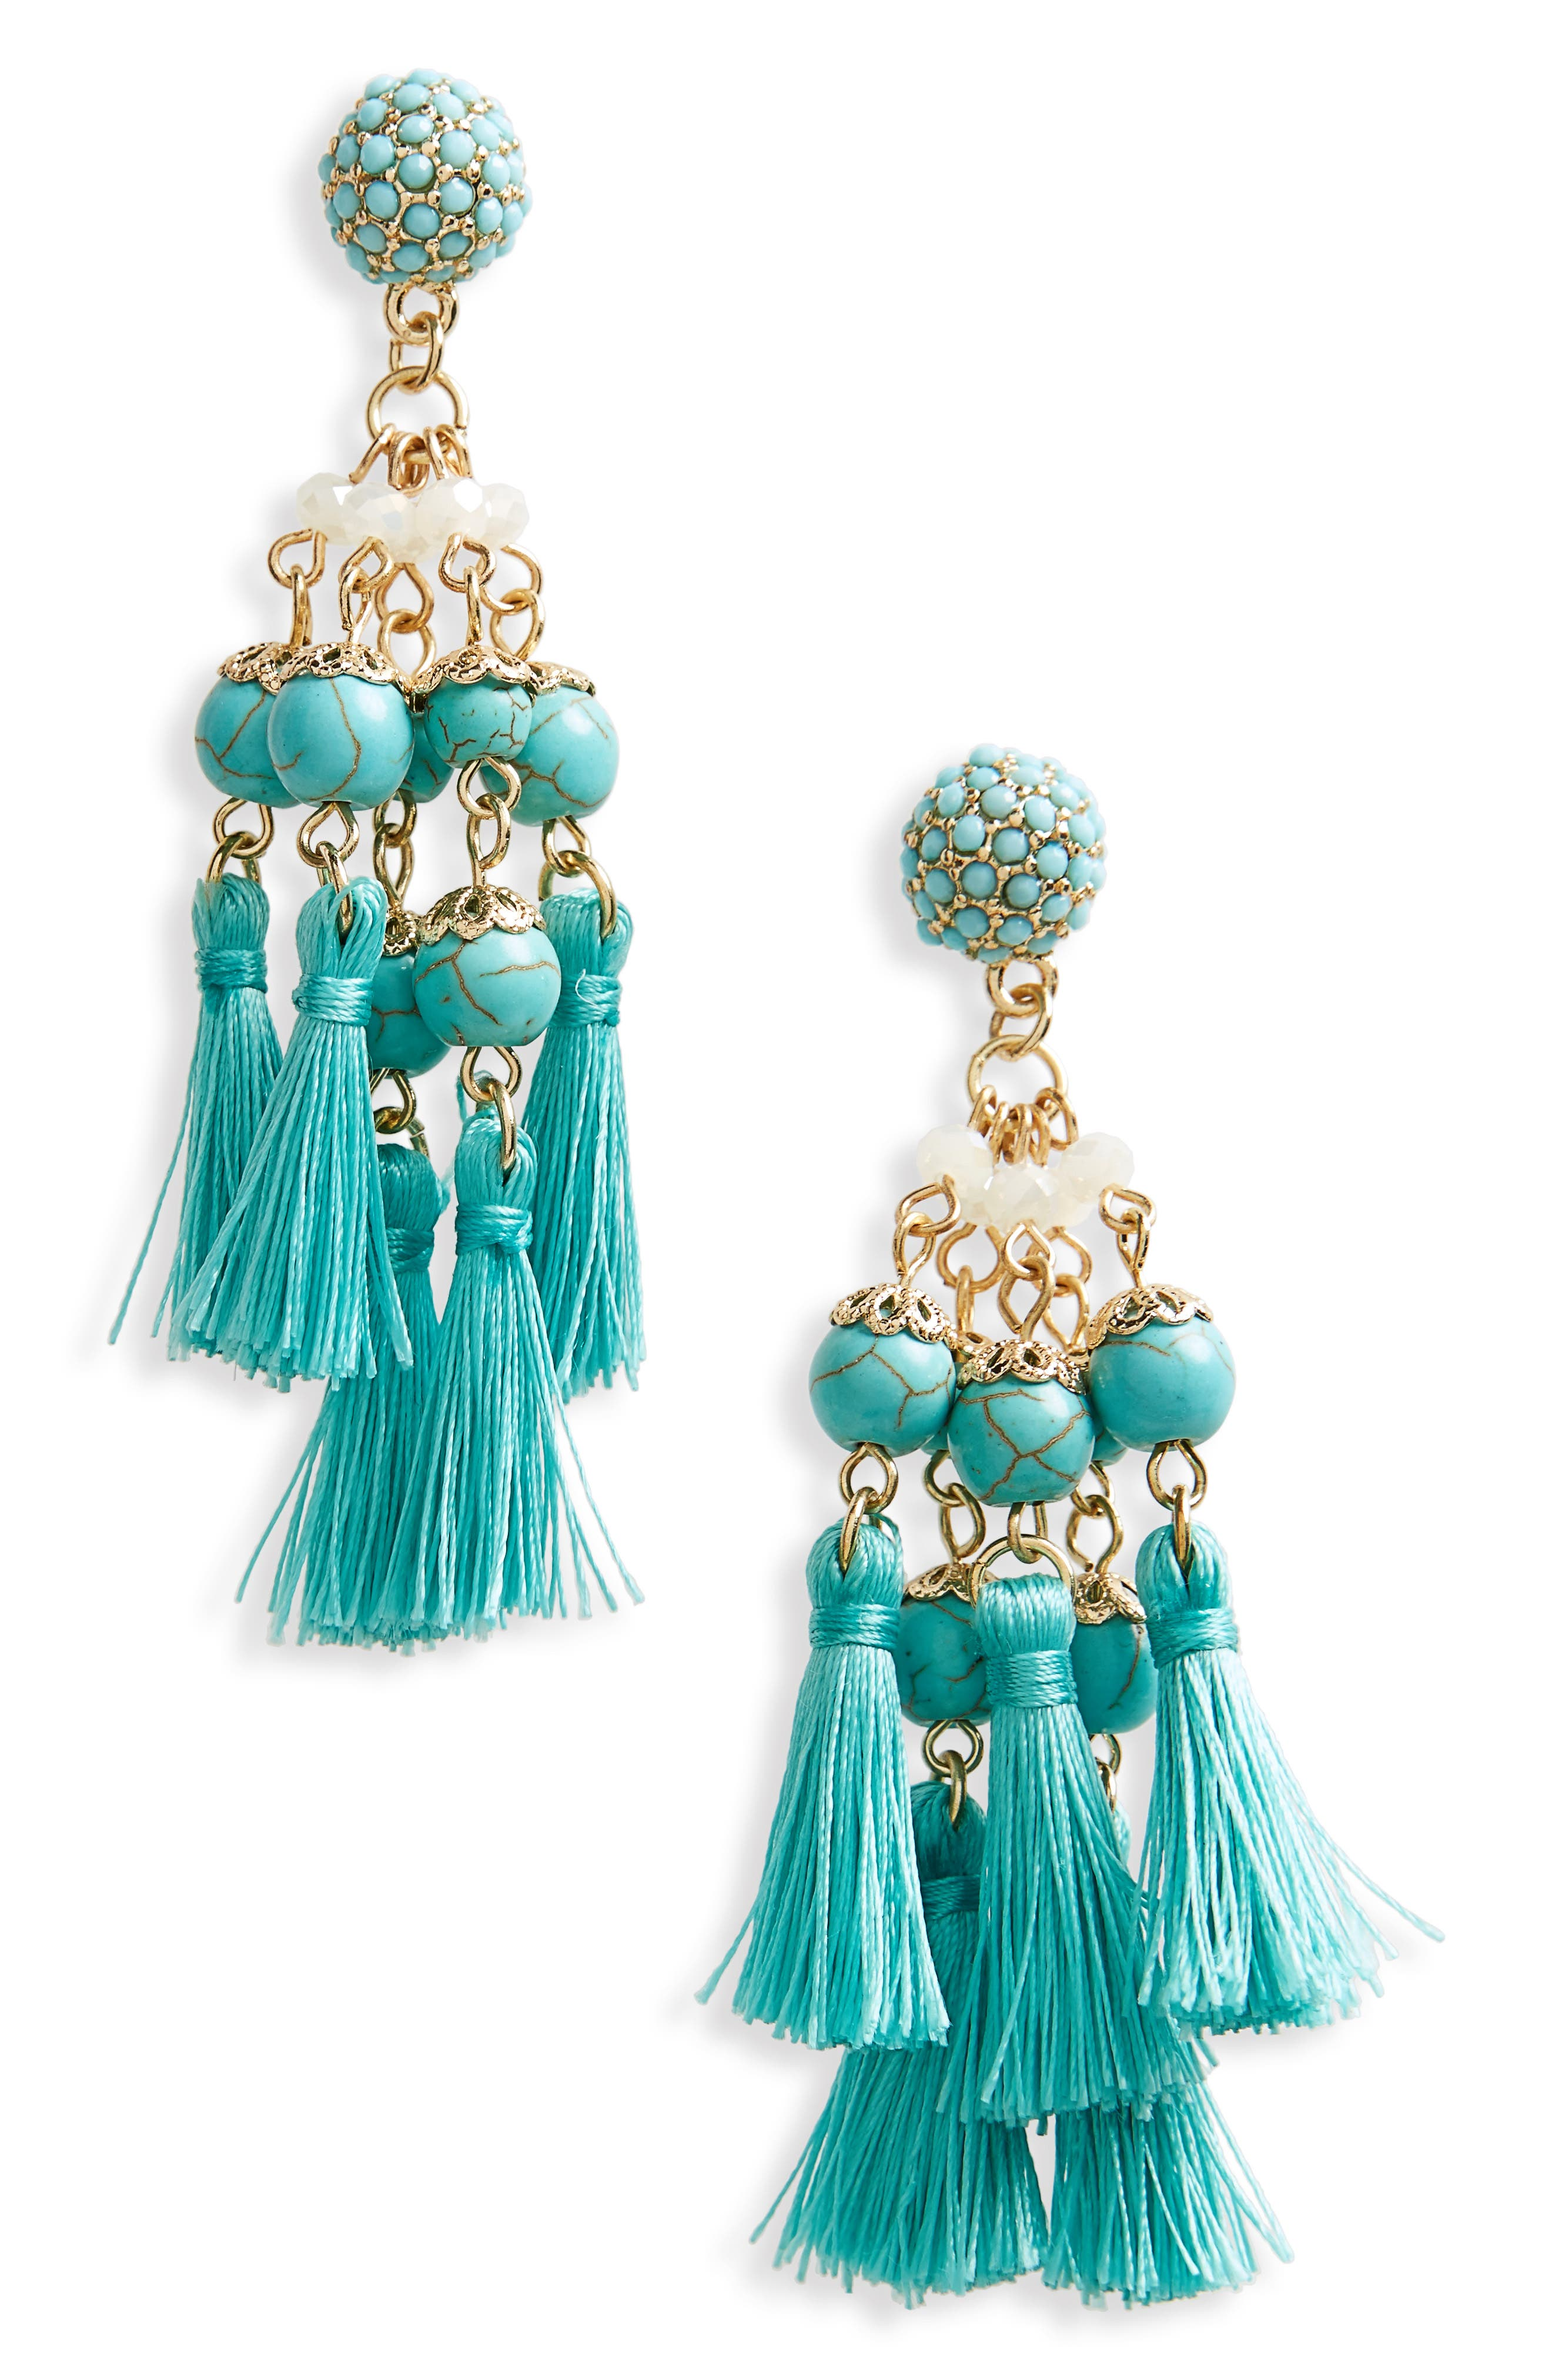 Tassel Howlite Bead Earrings,                         Main,                         color, Turquoise